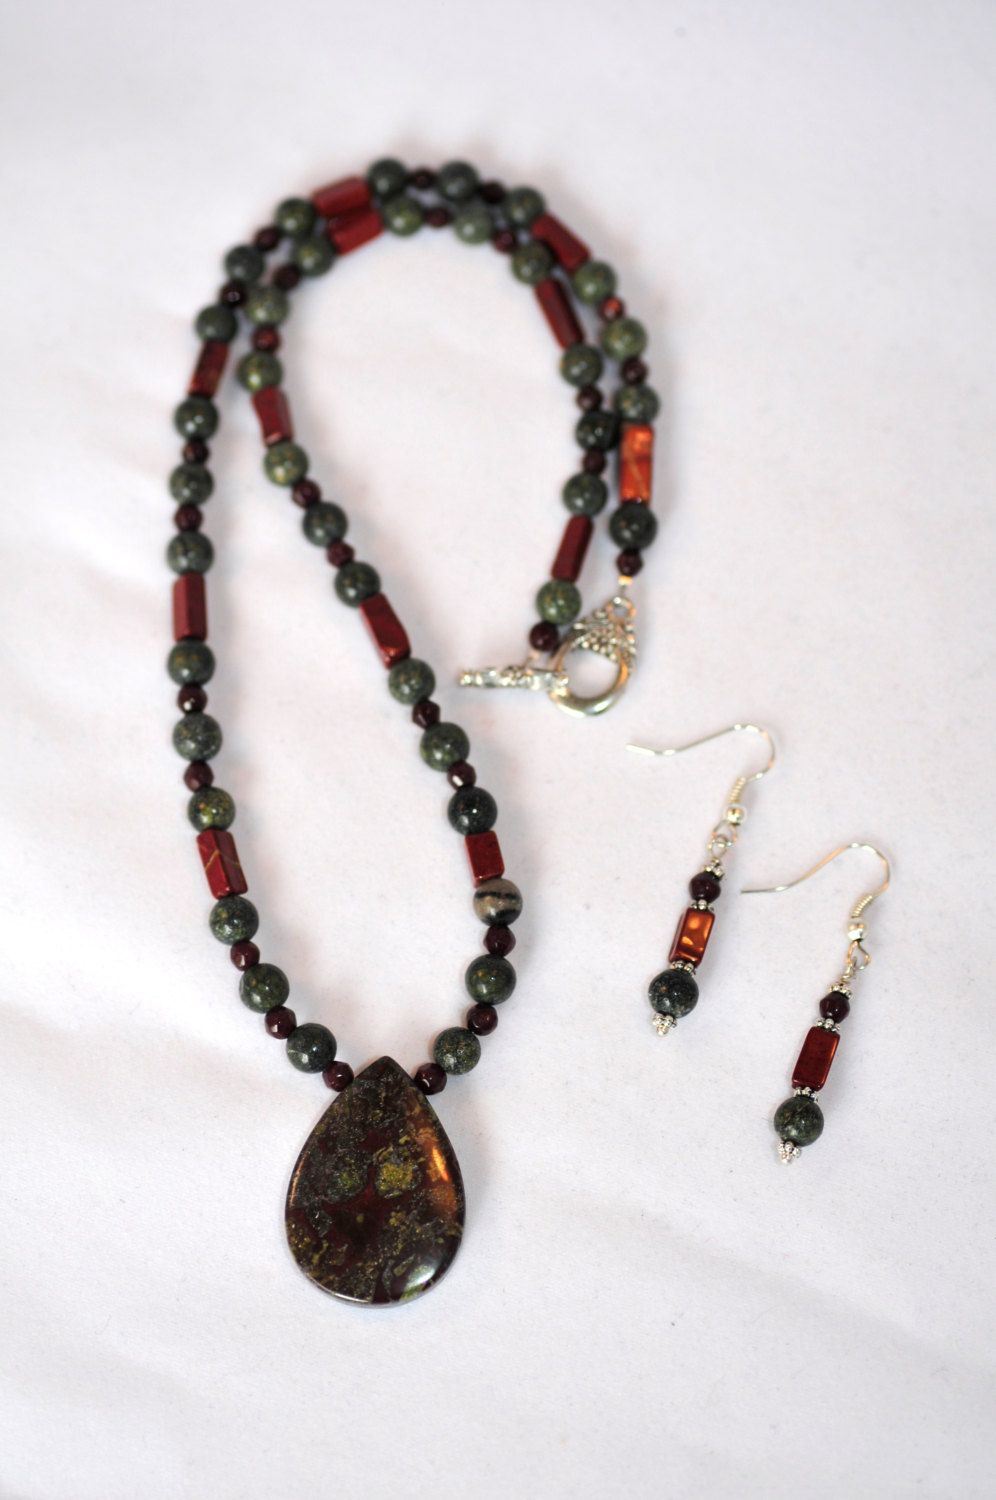 Bloodstone jasper pendant statement necklace with serpentine garnet